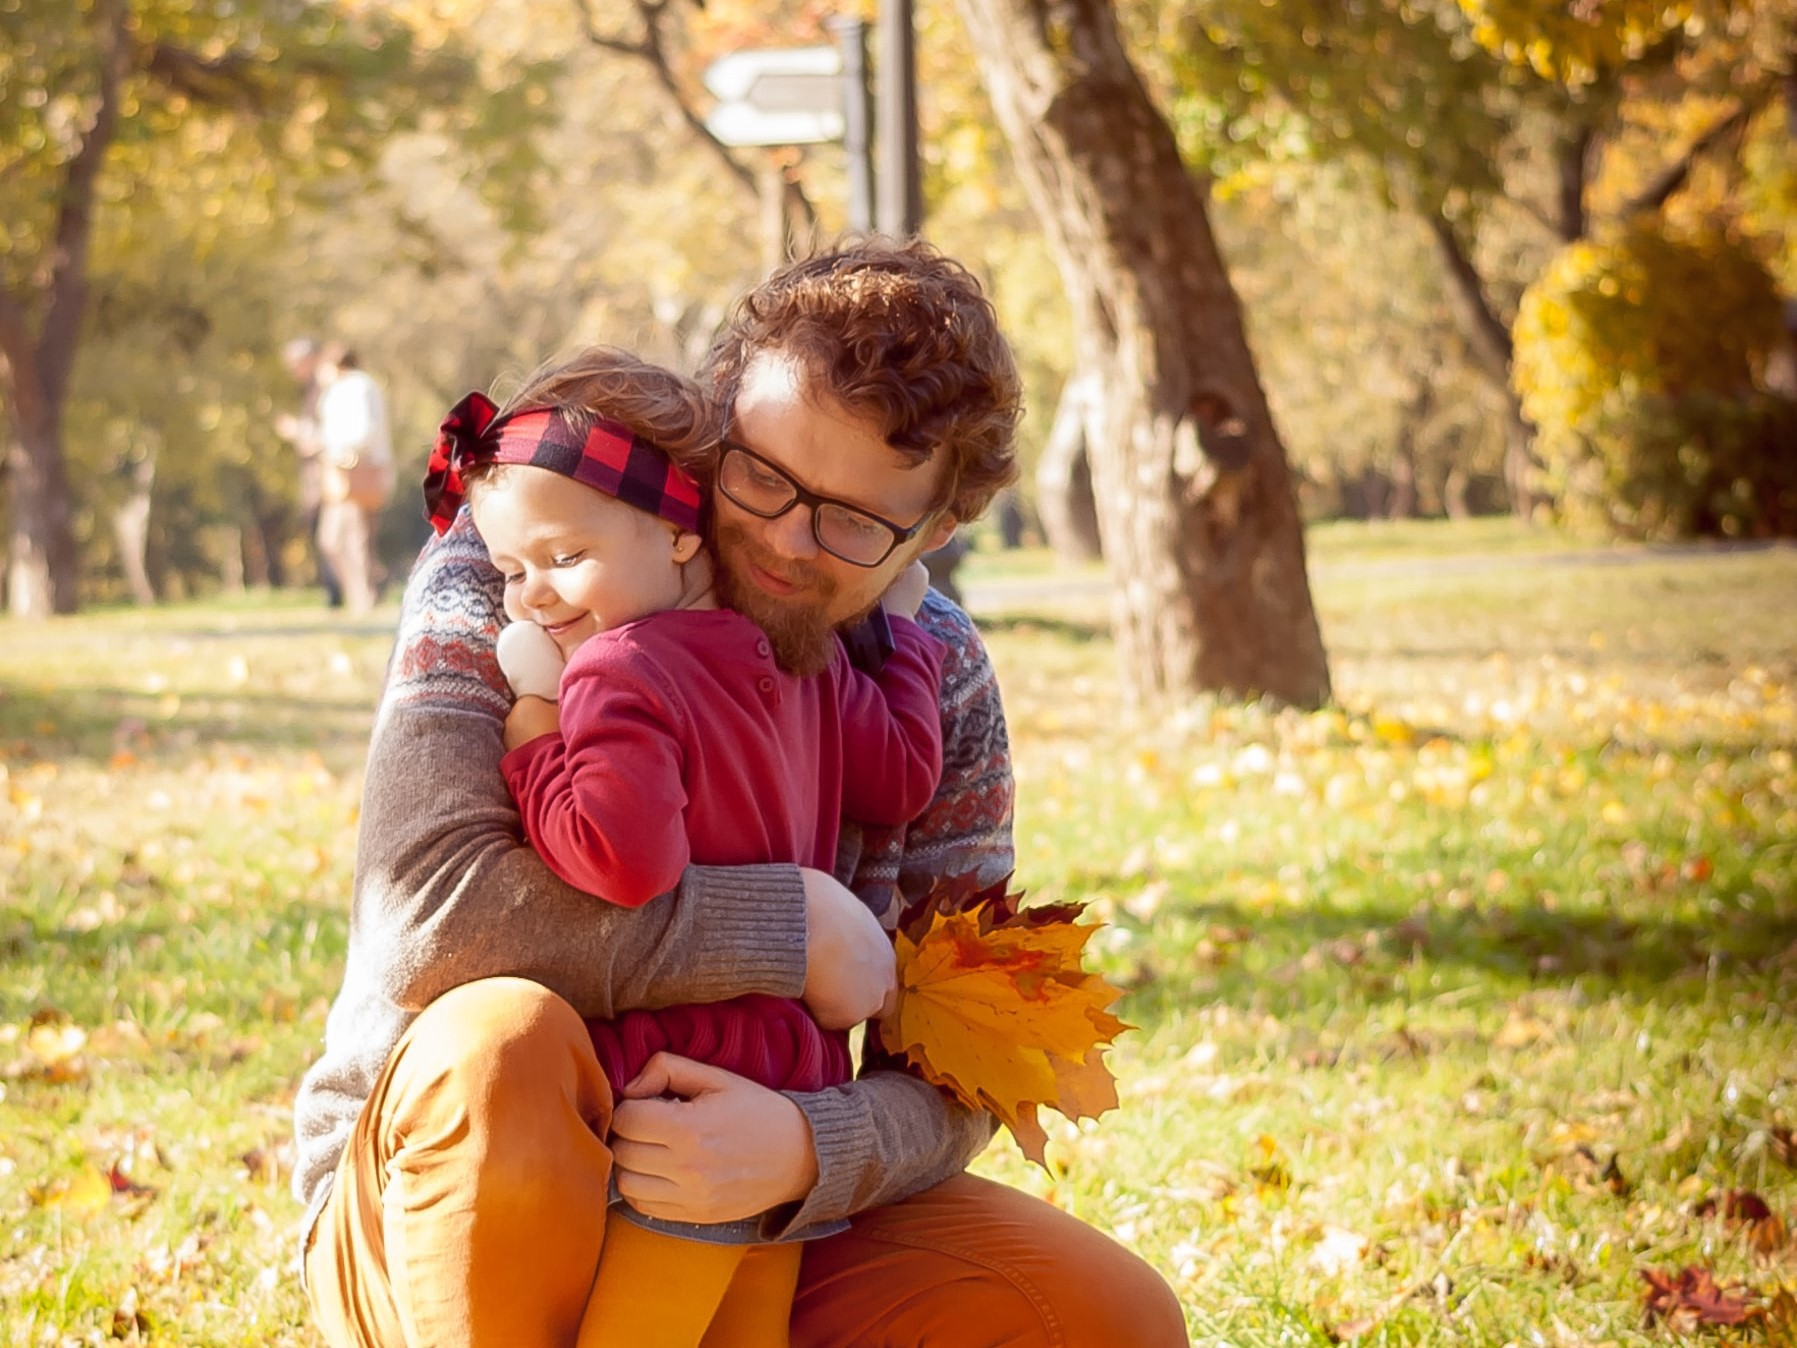 Dad lovingly hugs his toddler in a park, surrounded by autumn leaves